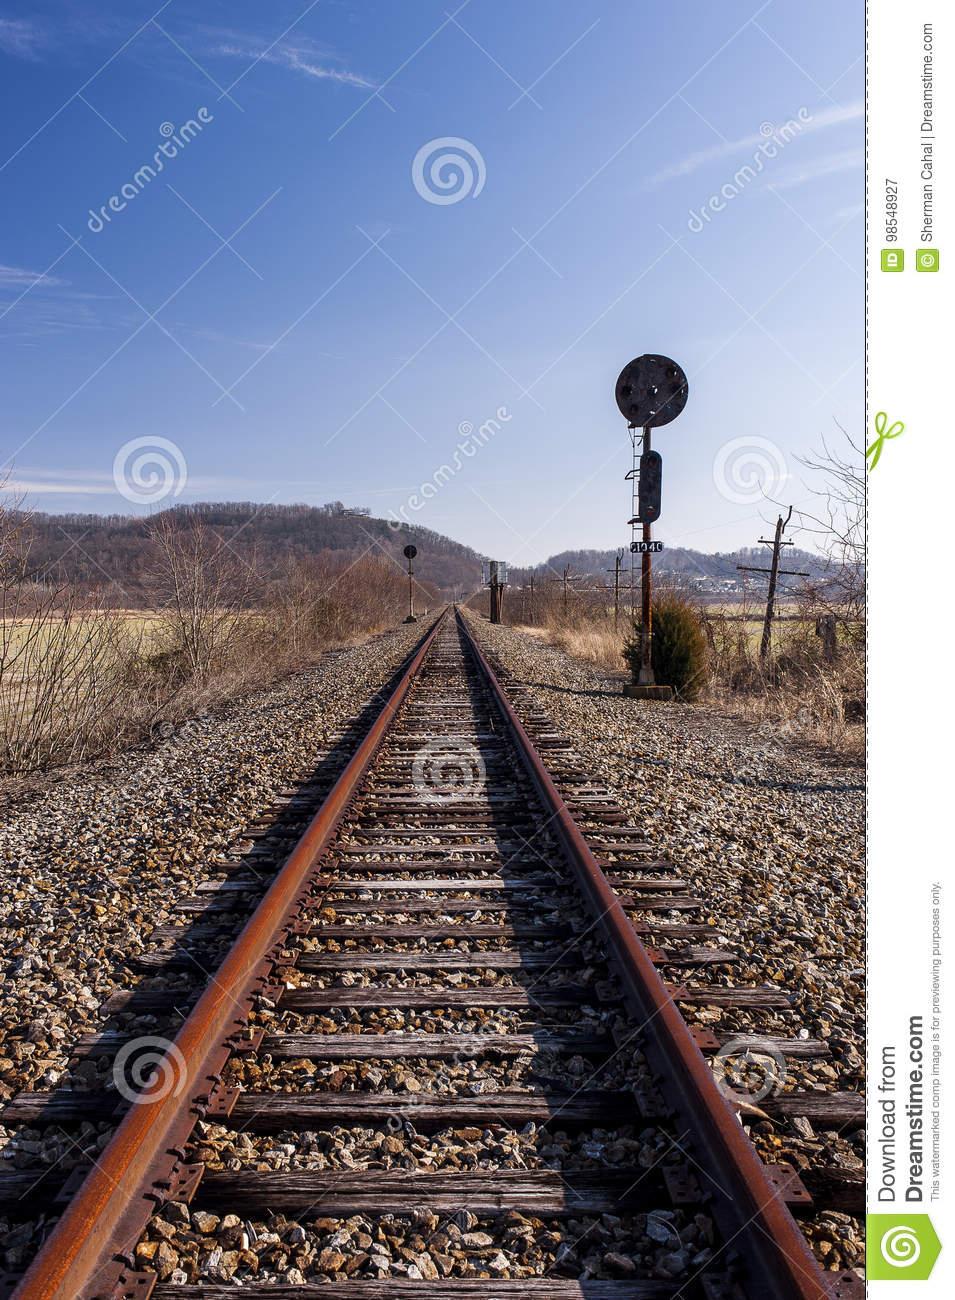 Abandoned Railroad Signal - Track View Stock Image - Image of signal